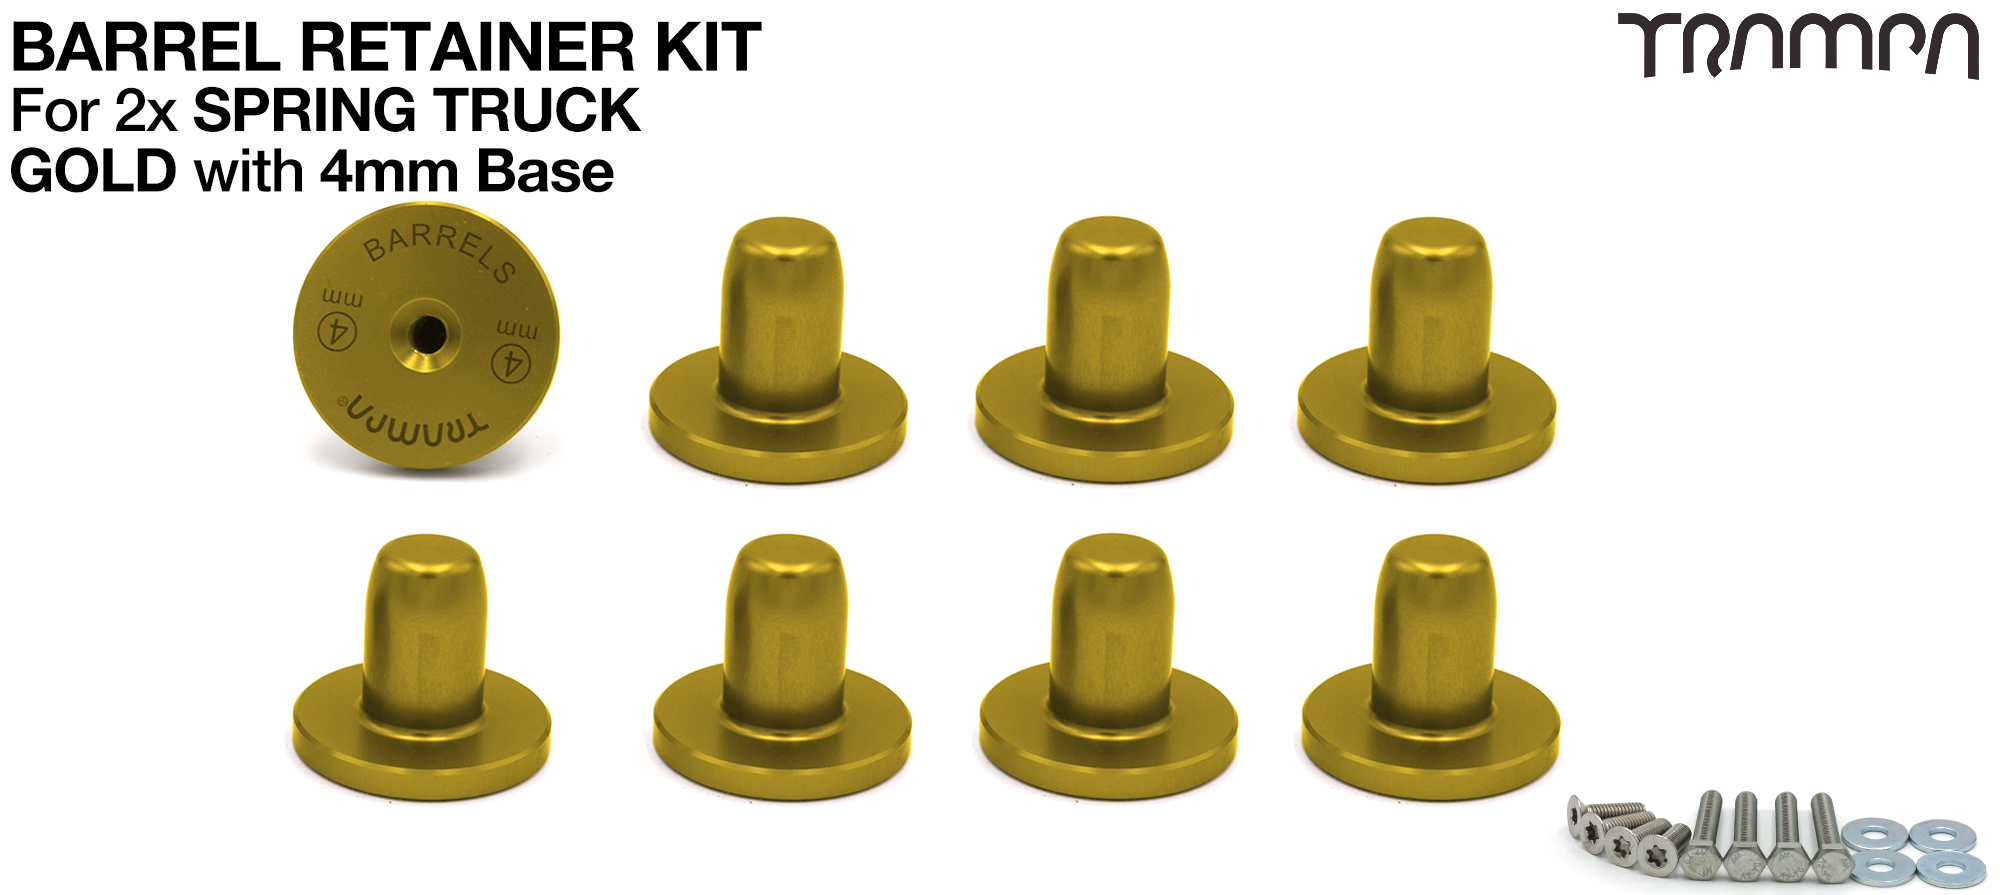 GOLD Barrel Retainers